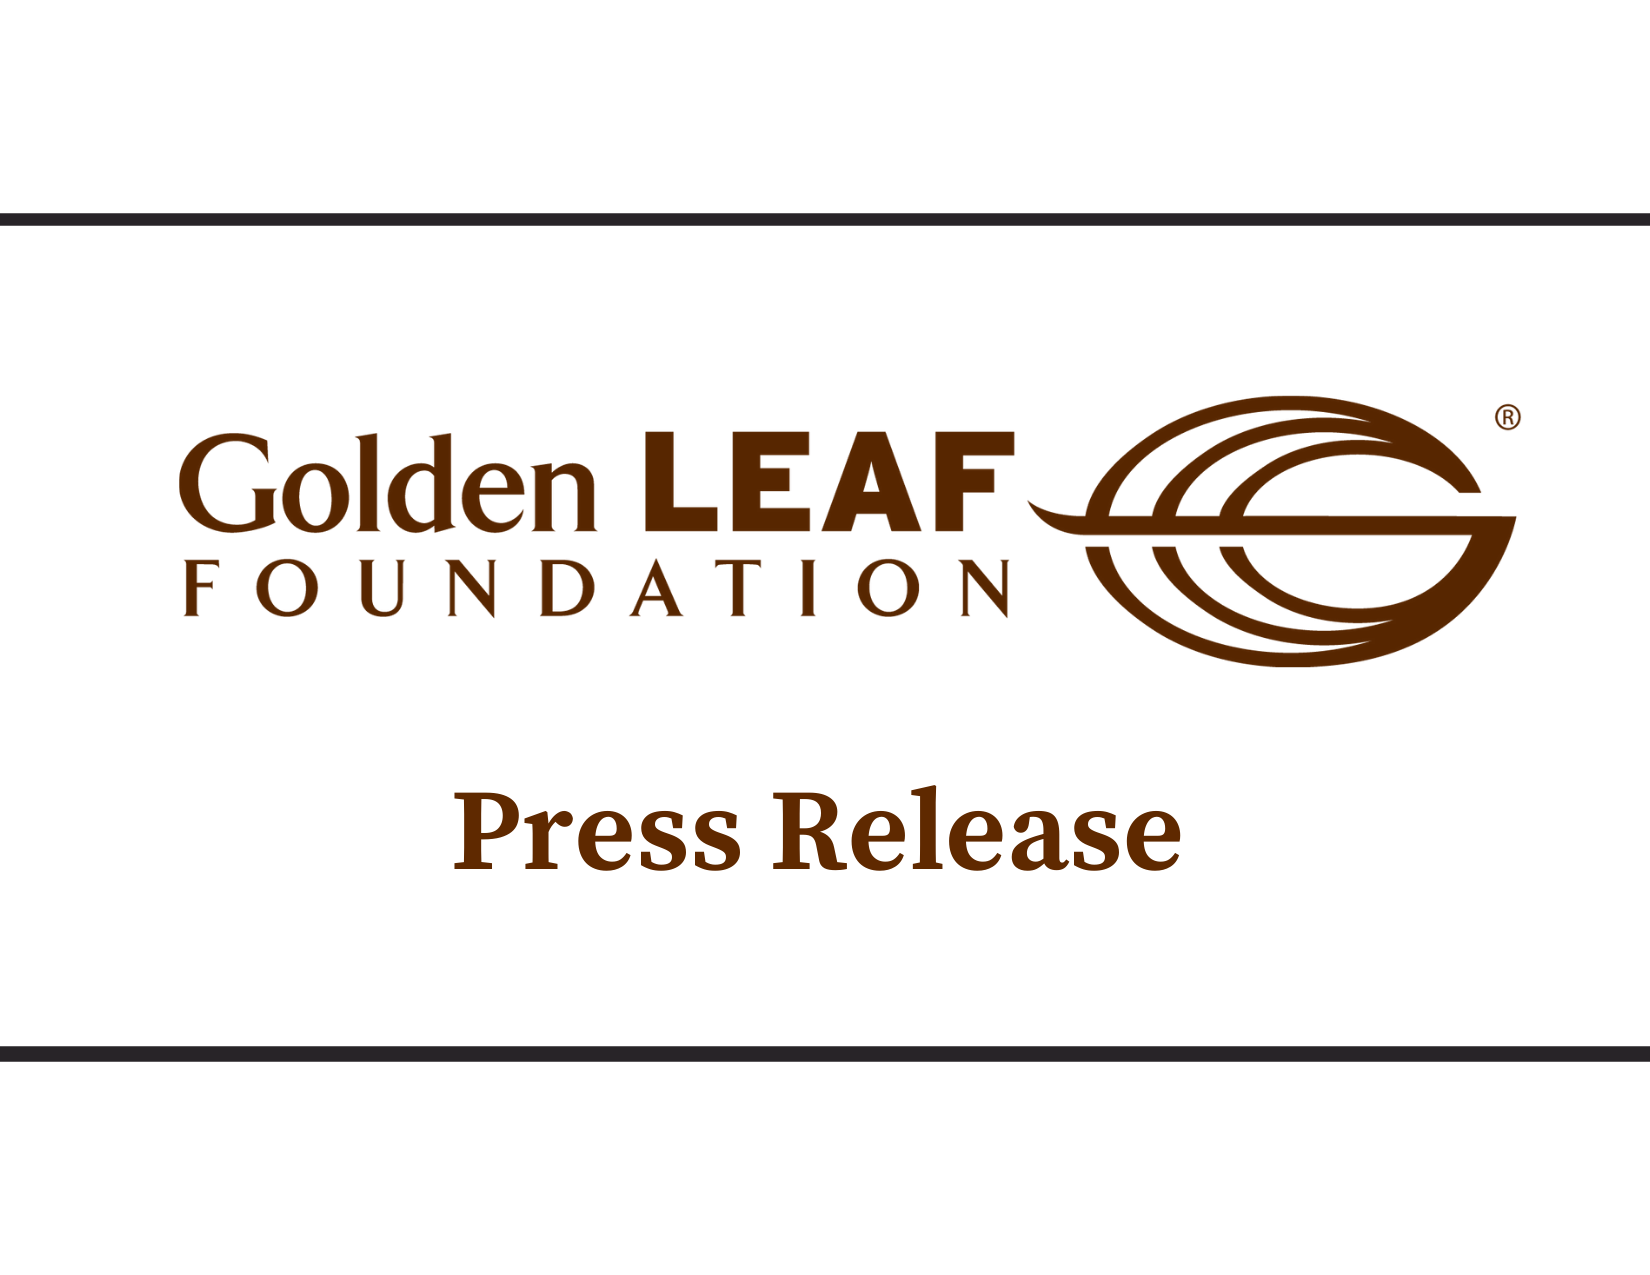 Golden LEAF Board awards $2.4M in funding, elects board officers and committee chairs, works on development of strategic plan